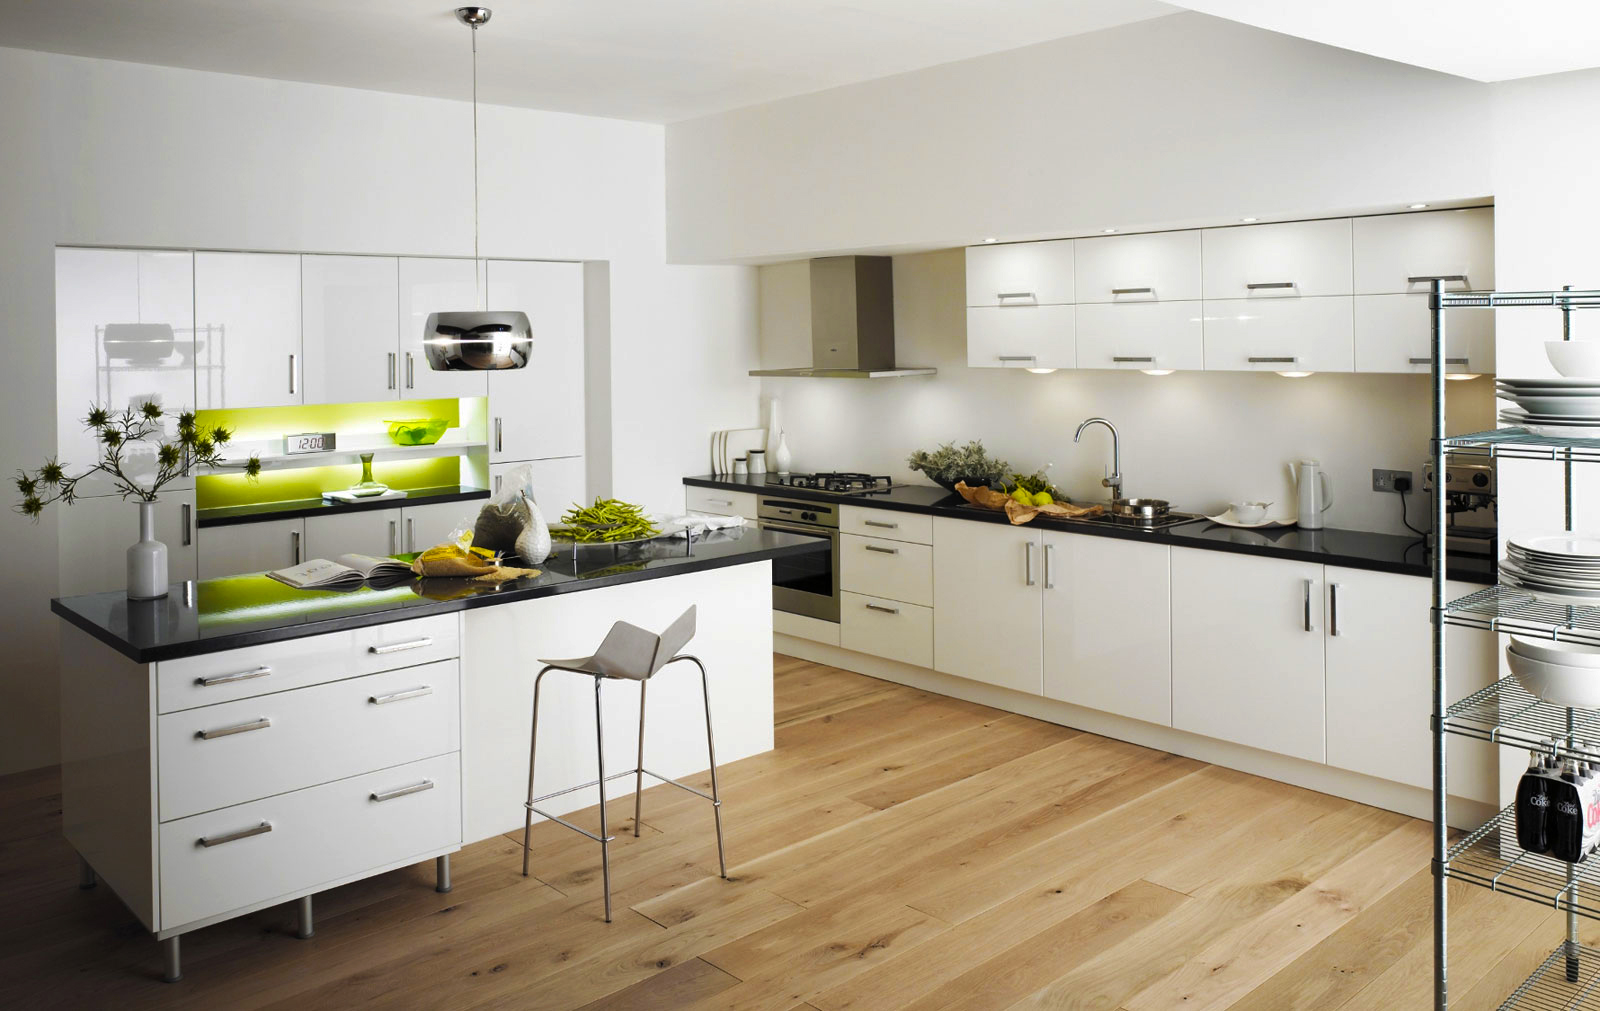 contemporary-kitchen-cabinets-remodel-design-ideas-for-best-custom-white-kitchen-cabinets